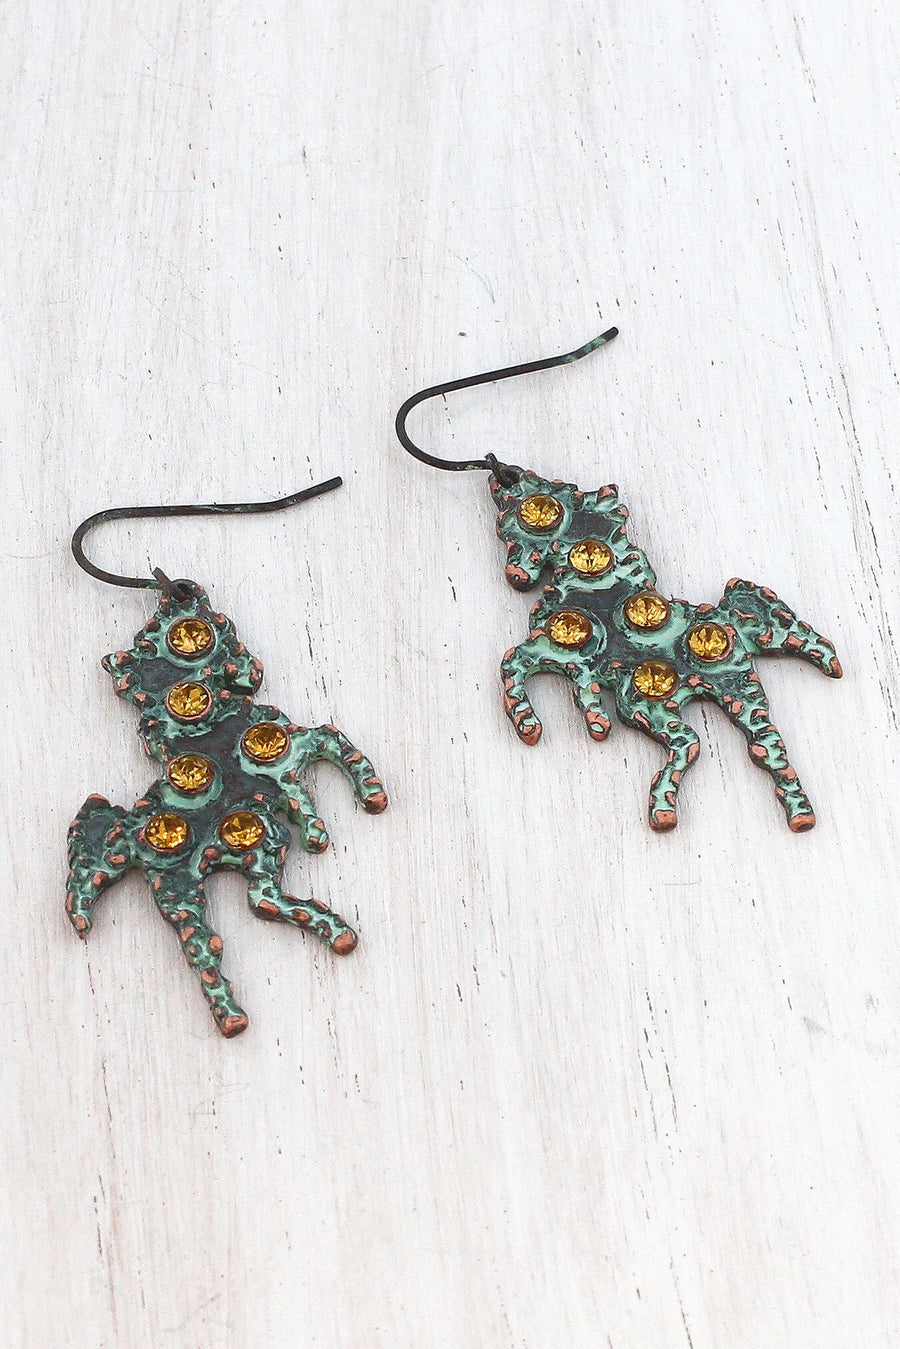 Topaz Crystal Accented Patina Coppertone Horse Earrings